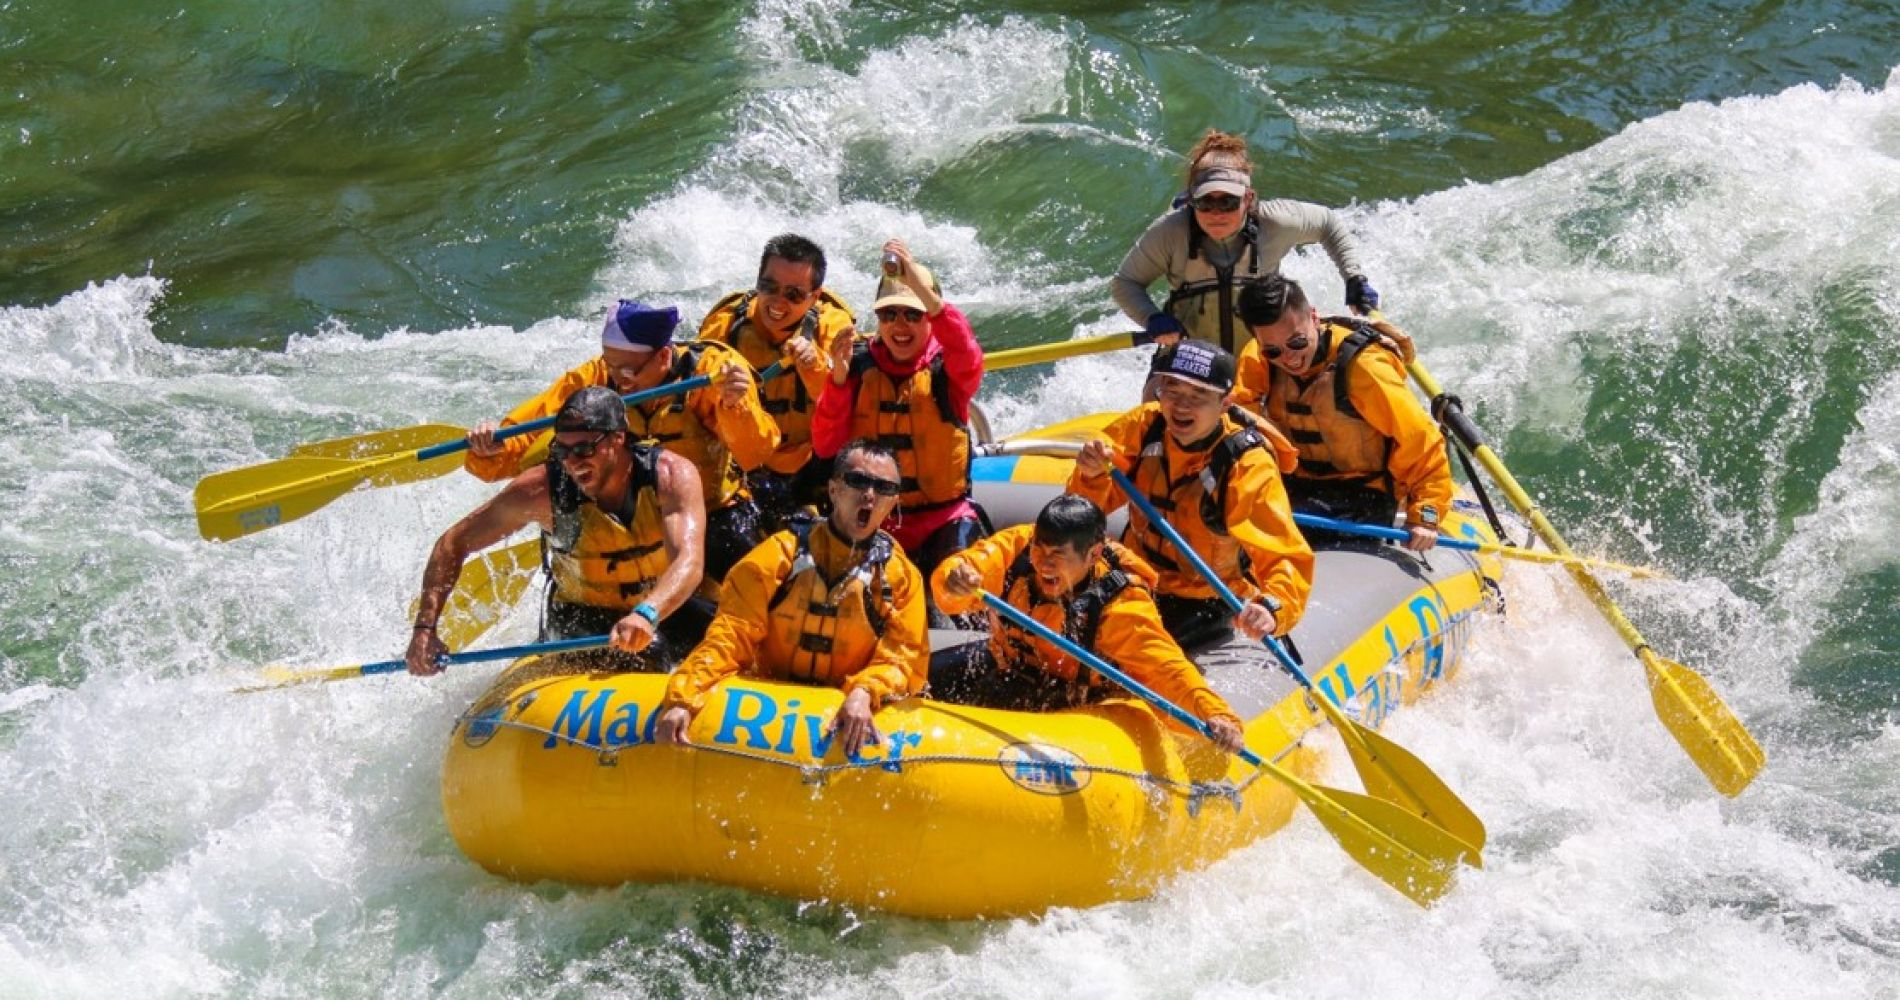 Snake River Wyoming tinggly experience gift